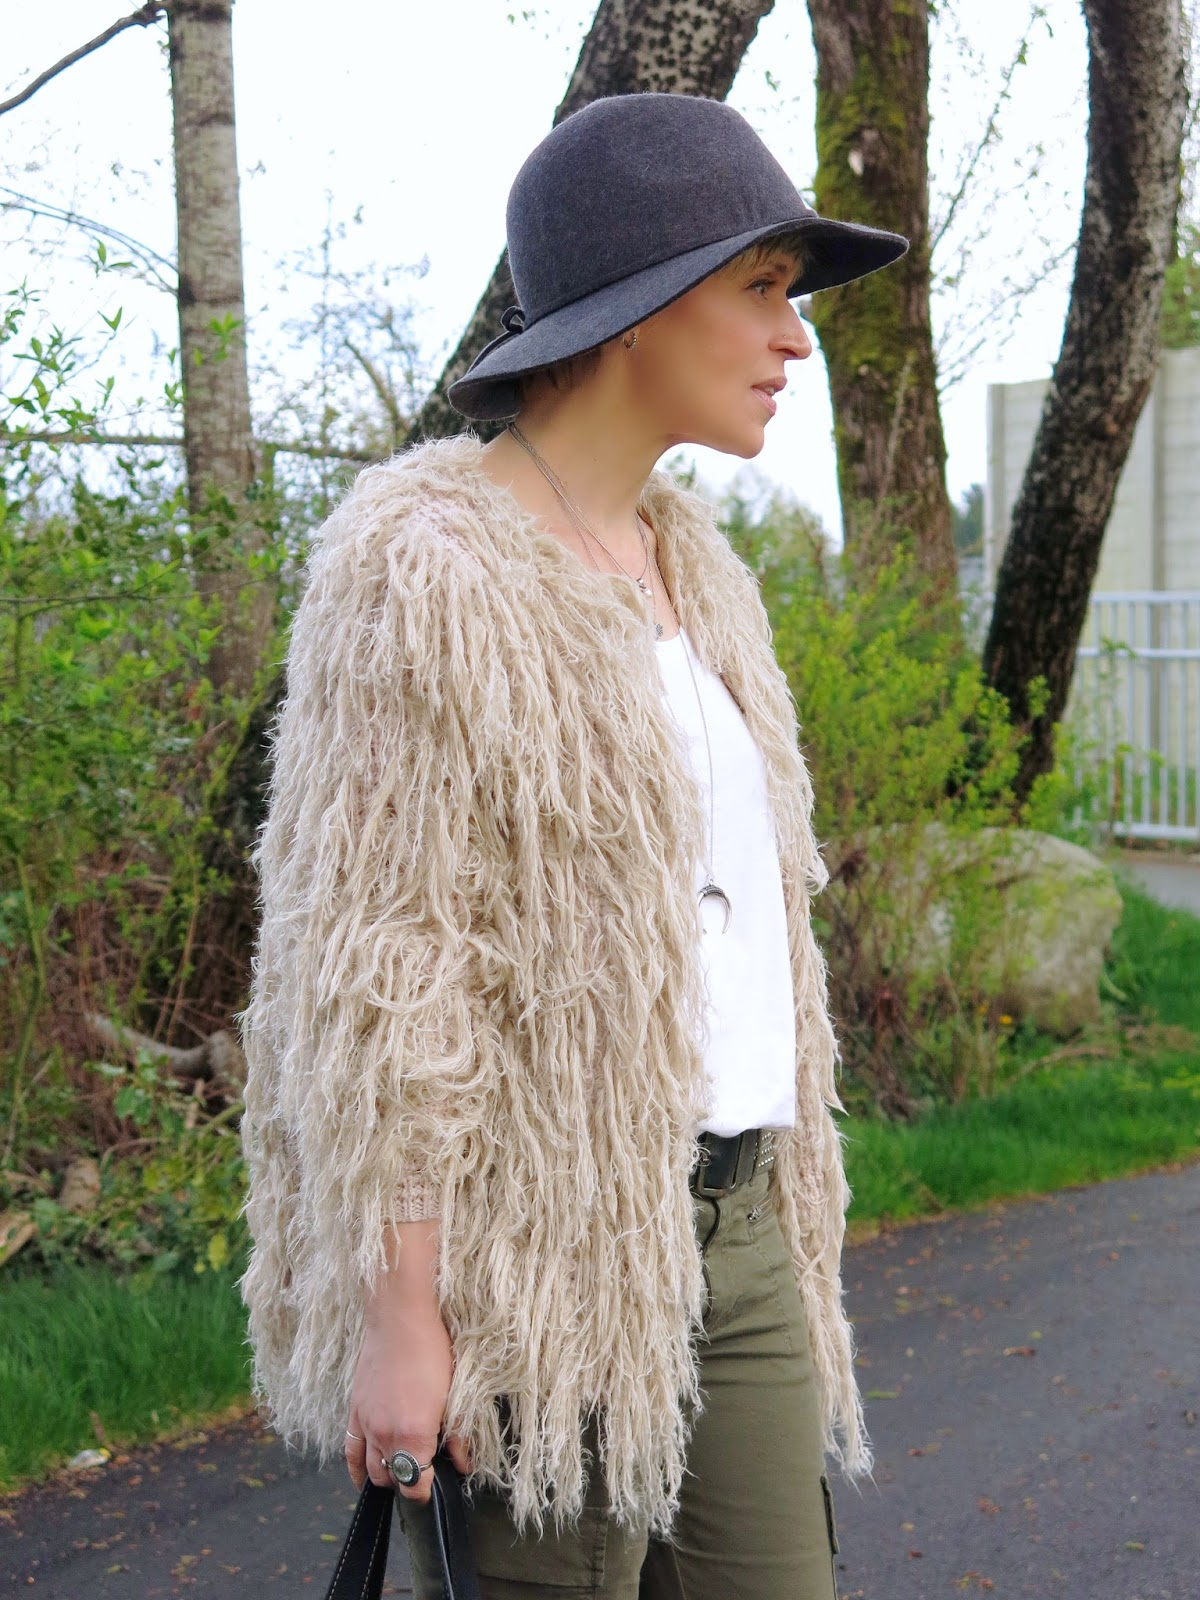 shaggy Free People cardigan and a floppy hat